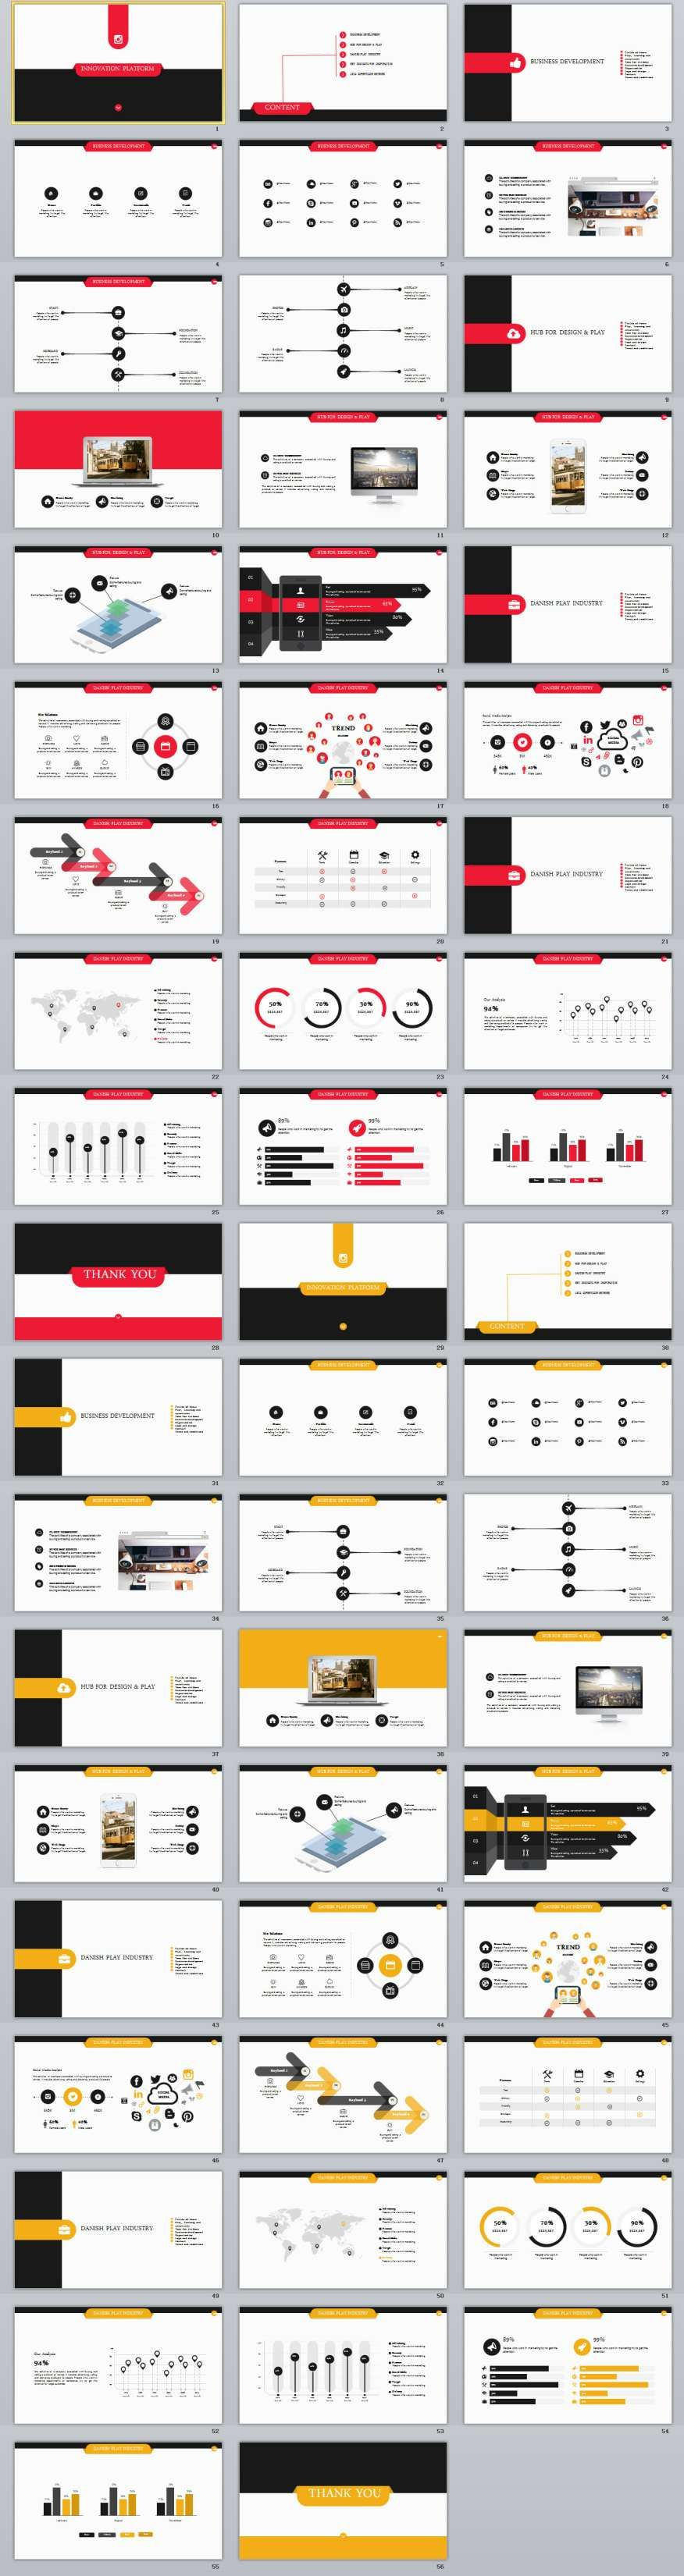 powerpoint poster backgrounds